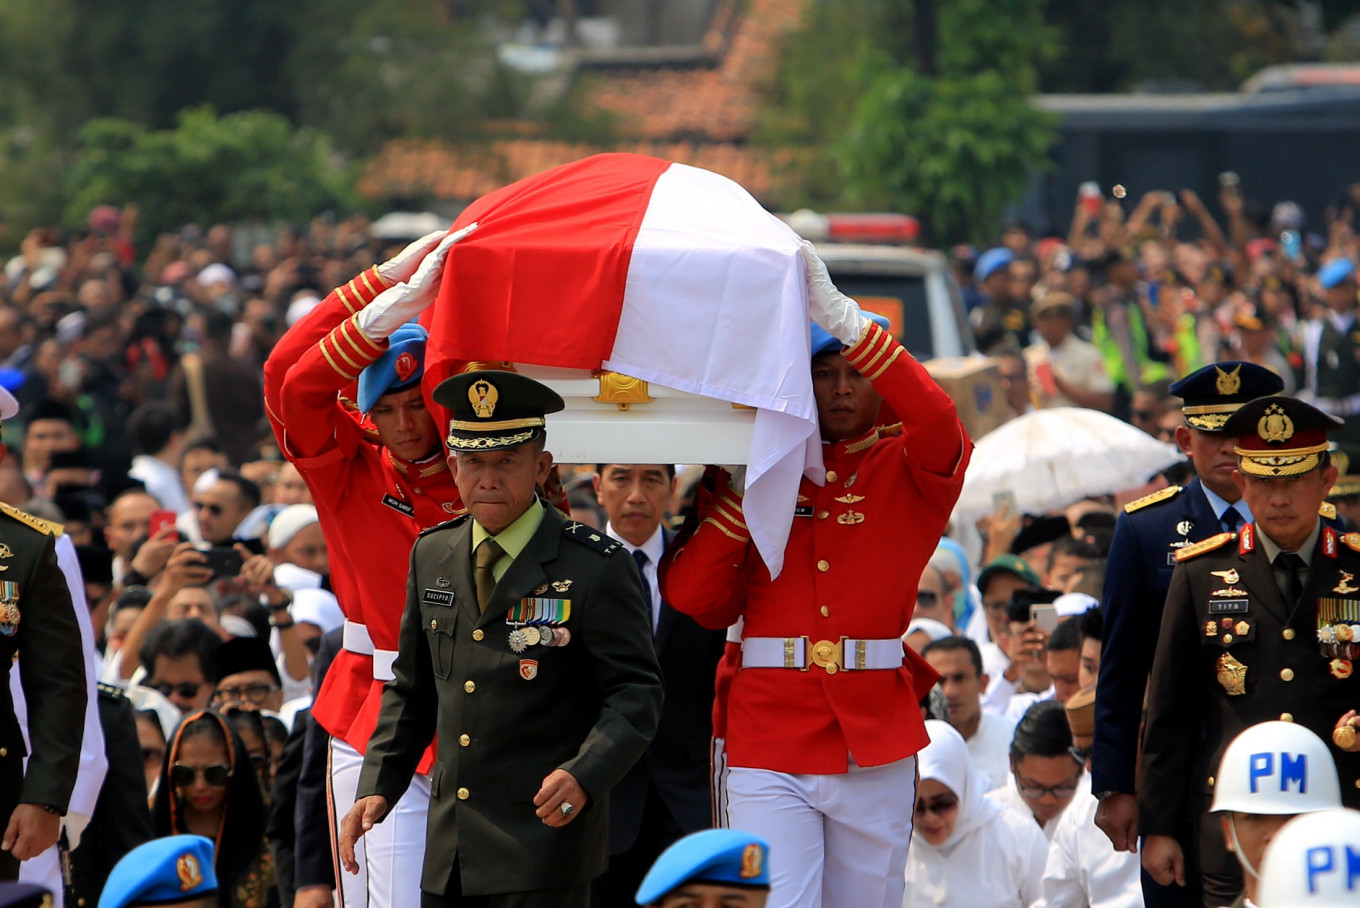 The funeral procession of Indonesia's third president BJ Habibie at the Kalibata Heroes Cemetery in South Jakarta on Thursday, September 12, 2019 JP/Seto Wardhana